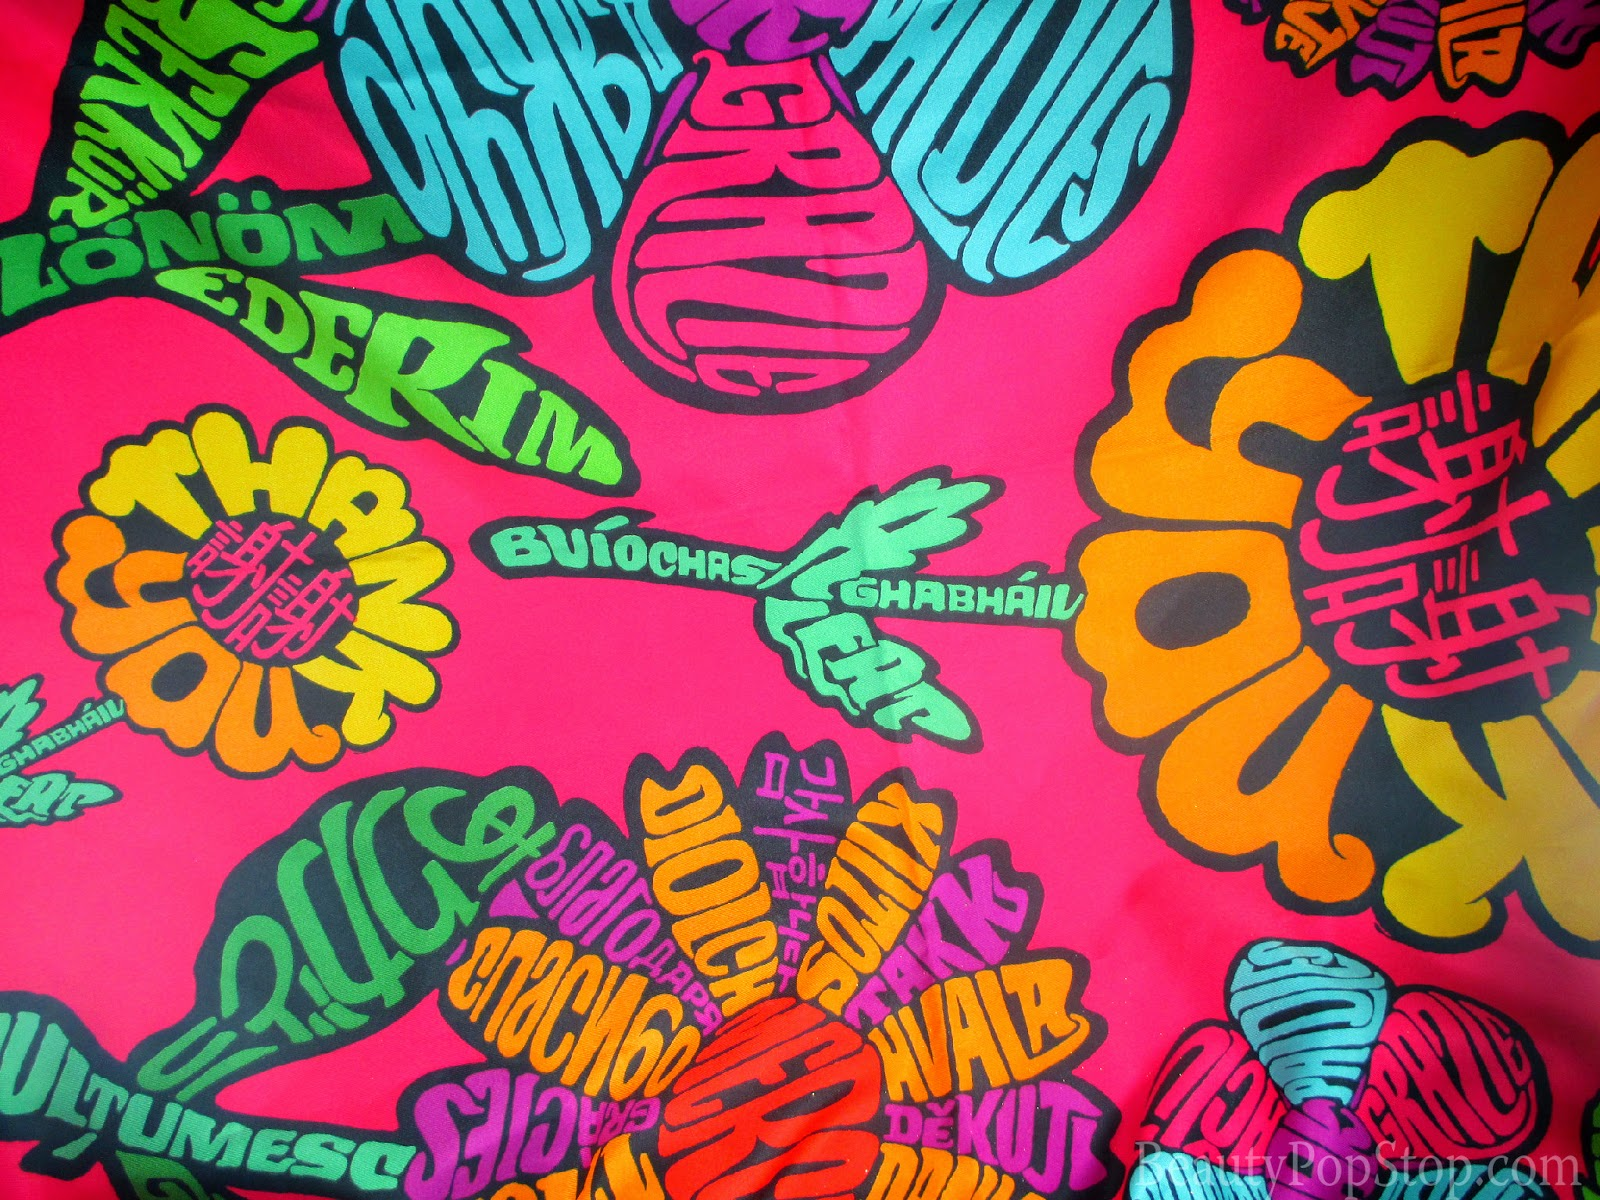 lush thank you knot-wrap review eco-friendly wrapping paper